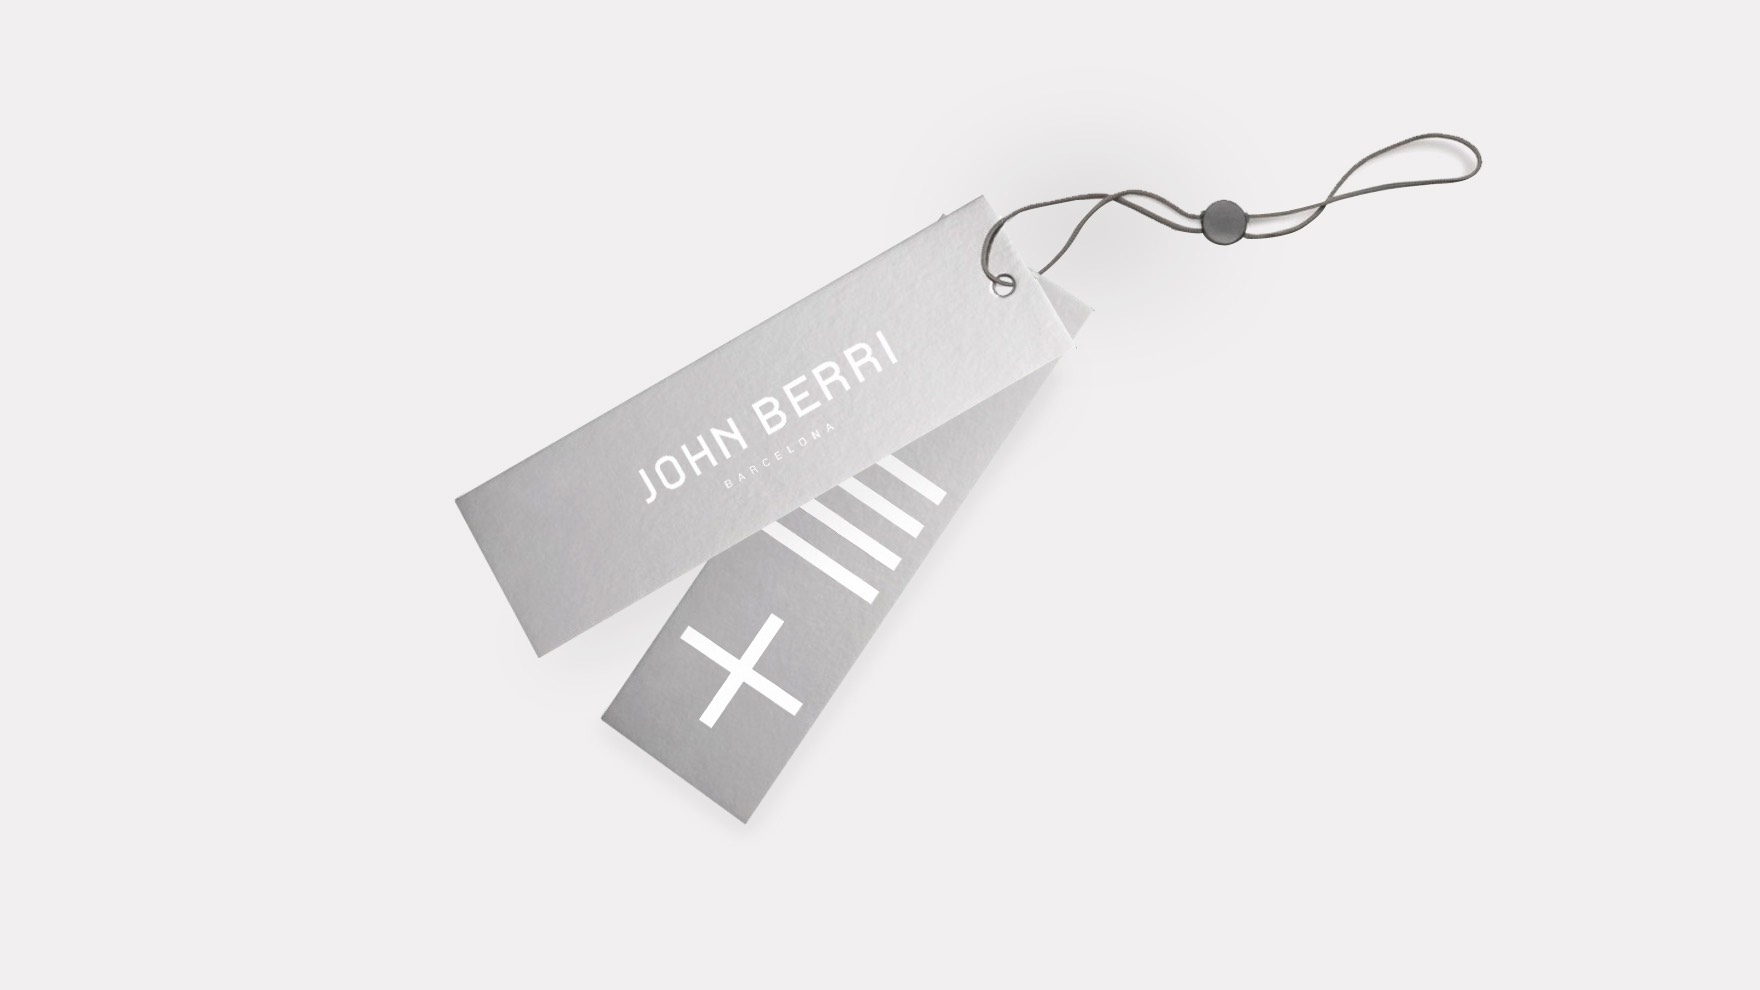 JOHN BERRI / GRAPHIC DESIGN